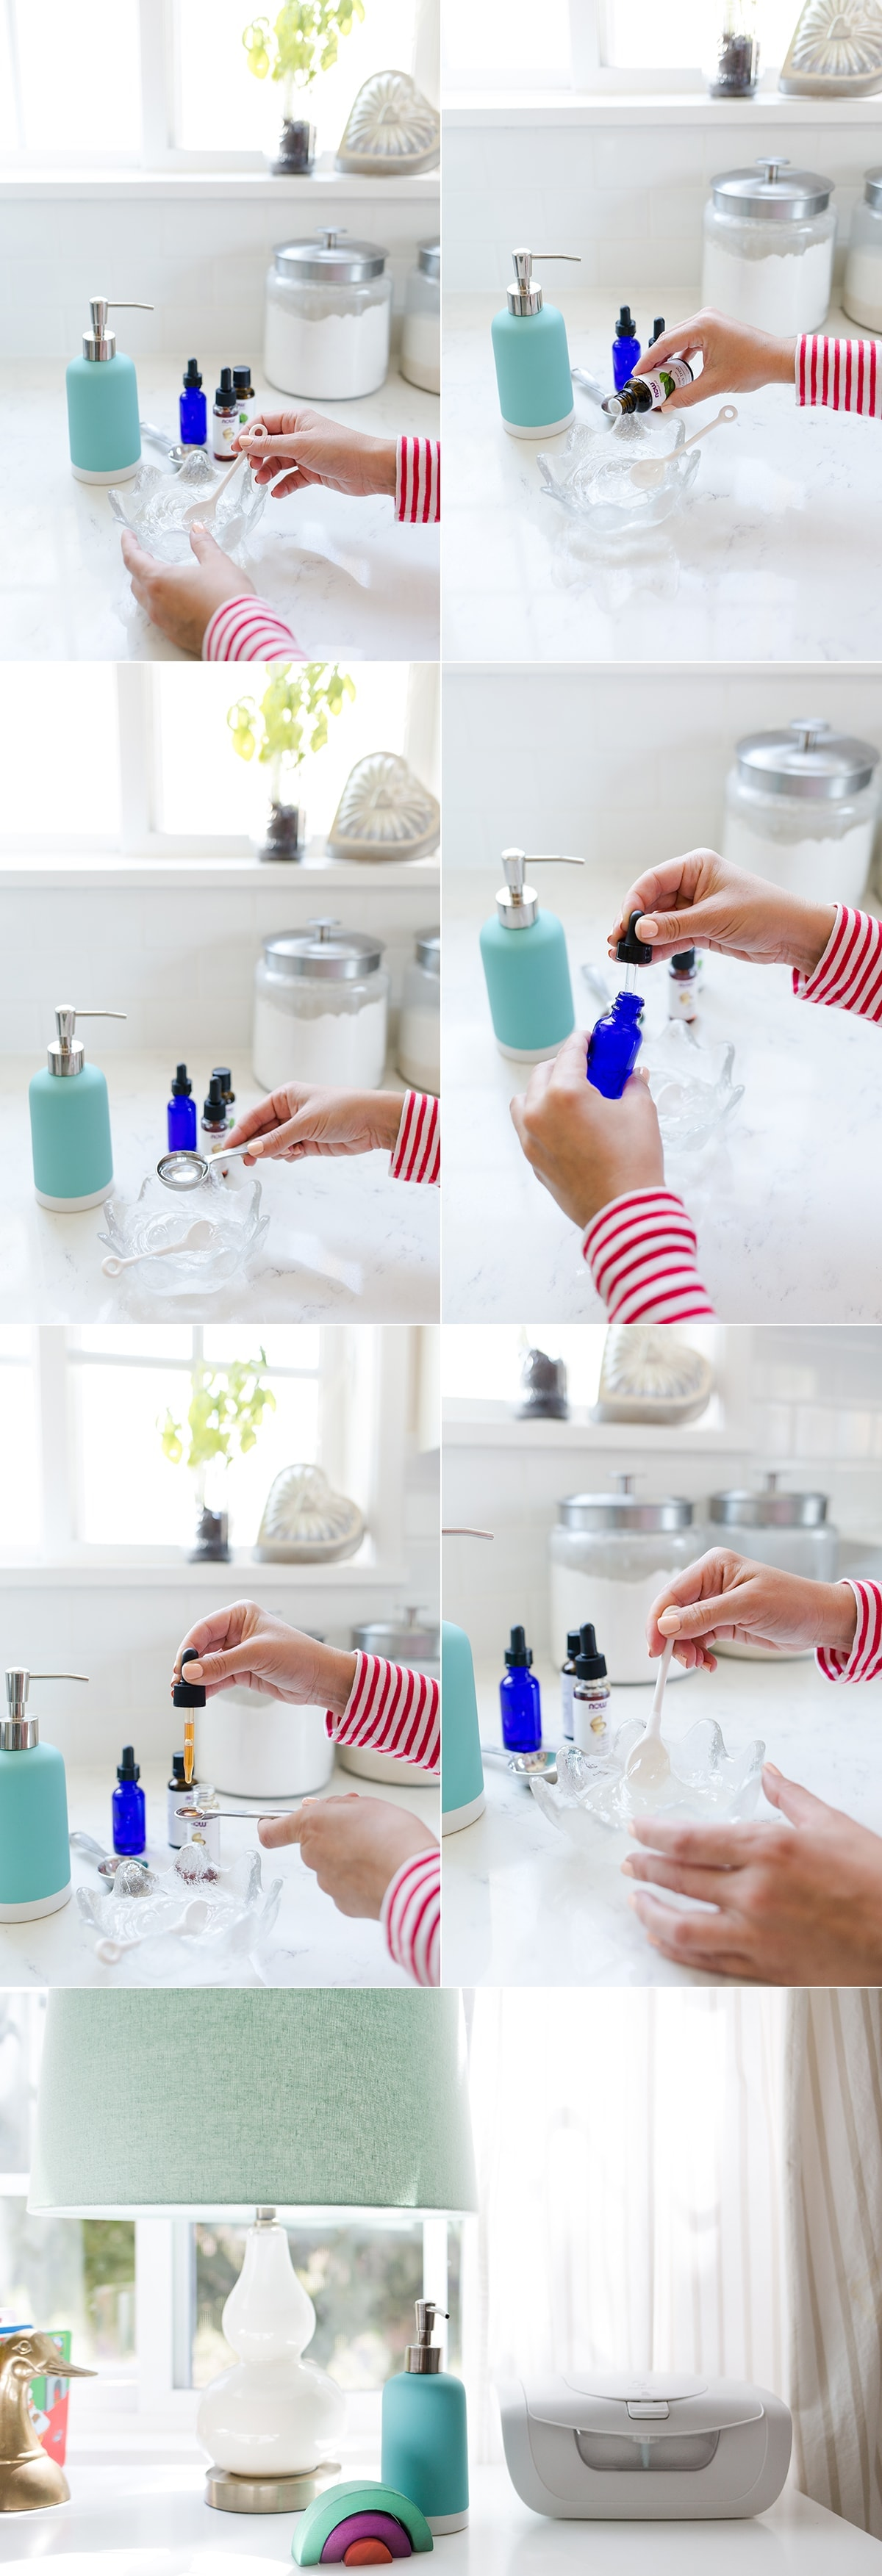 Homemade Lavender Hand Sanitizer